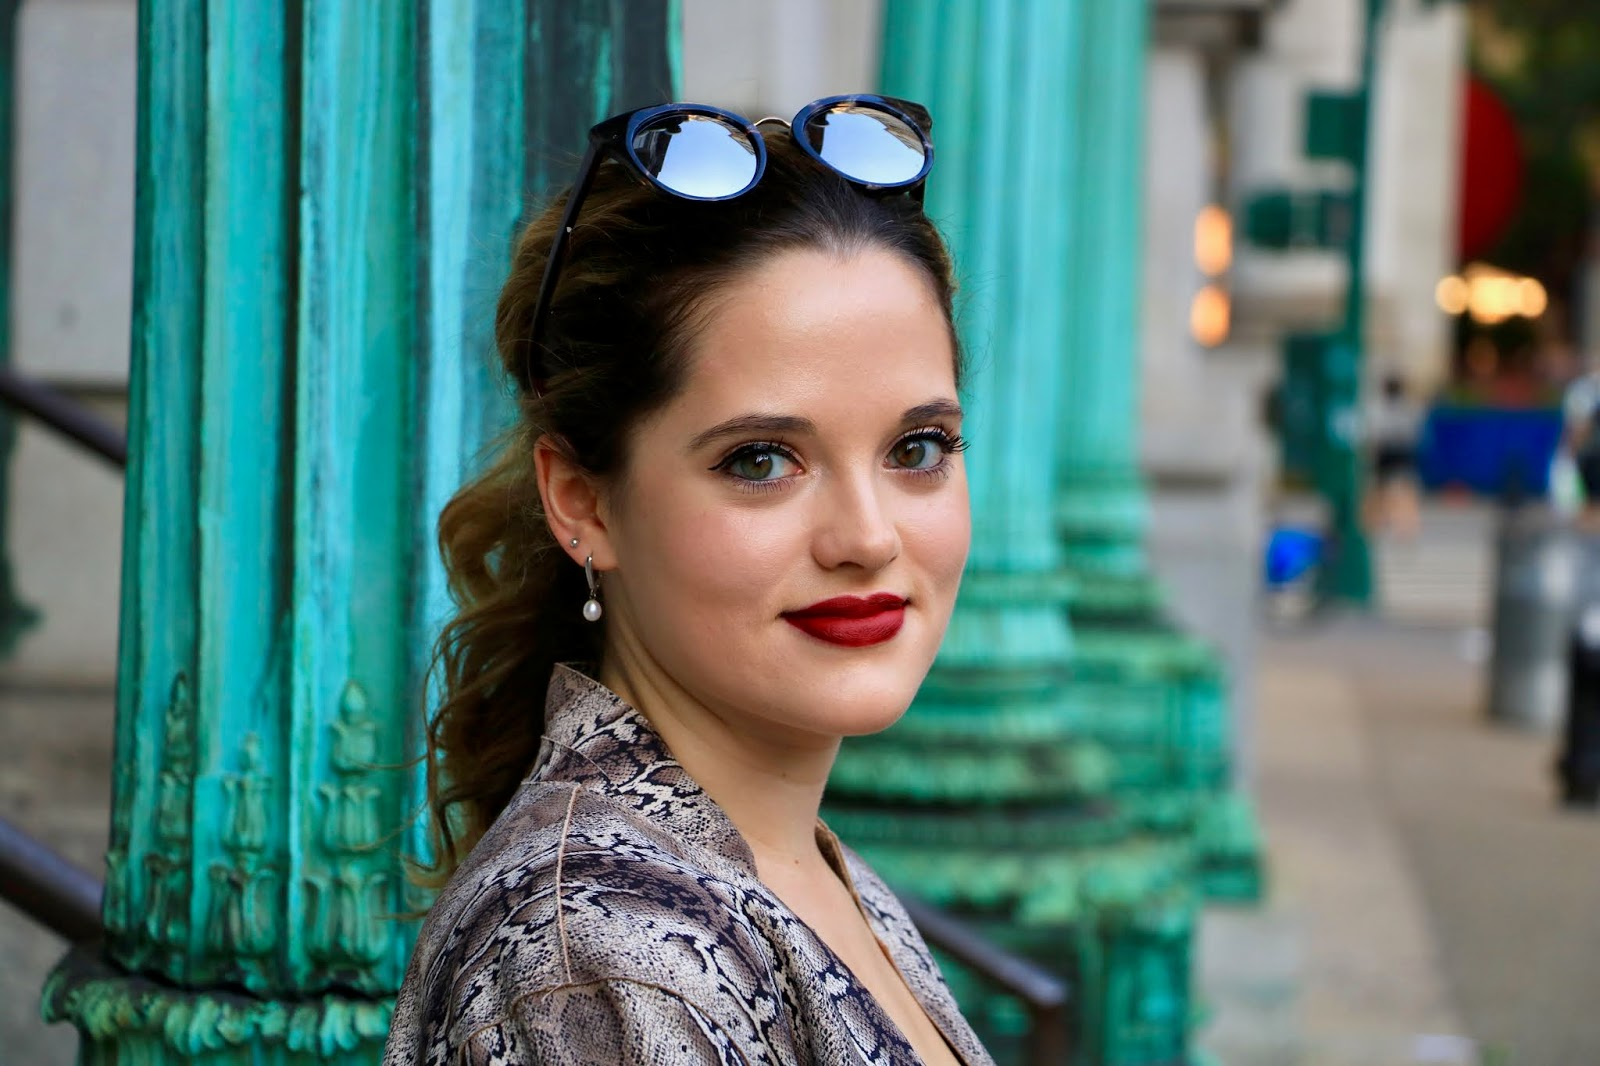 Nyc fashion blogger Kathleen Harper wearing pearl drop earrings and red lipstick.